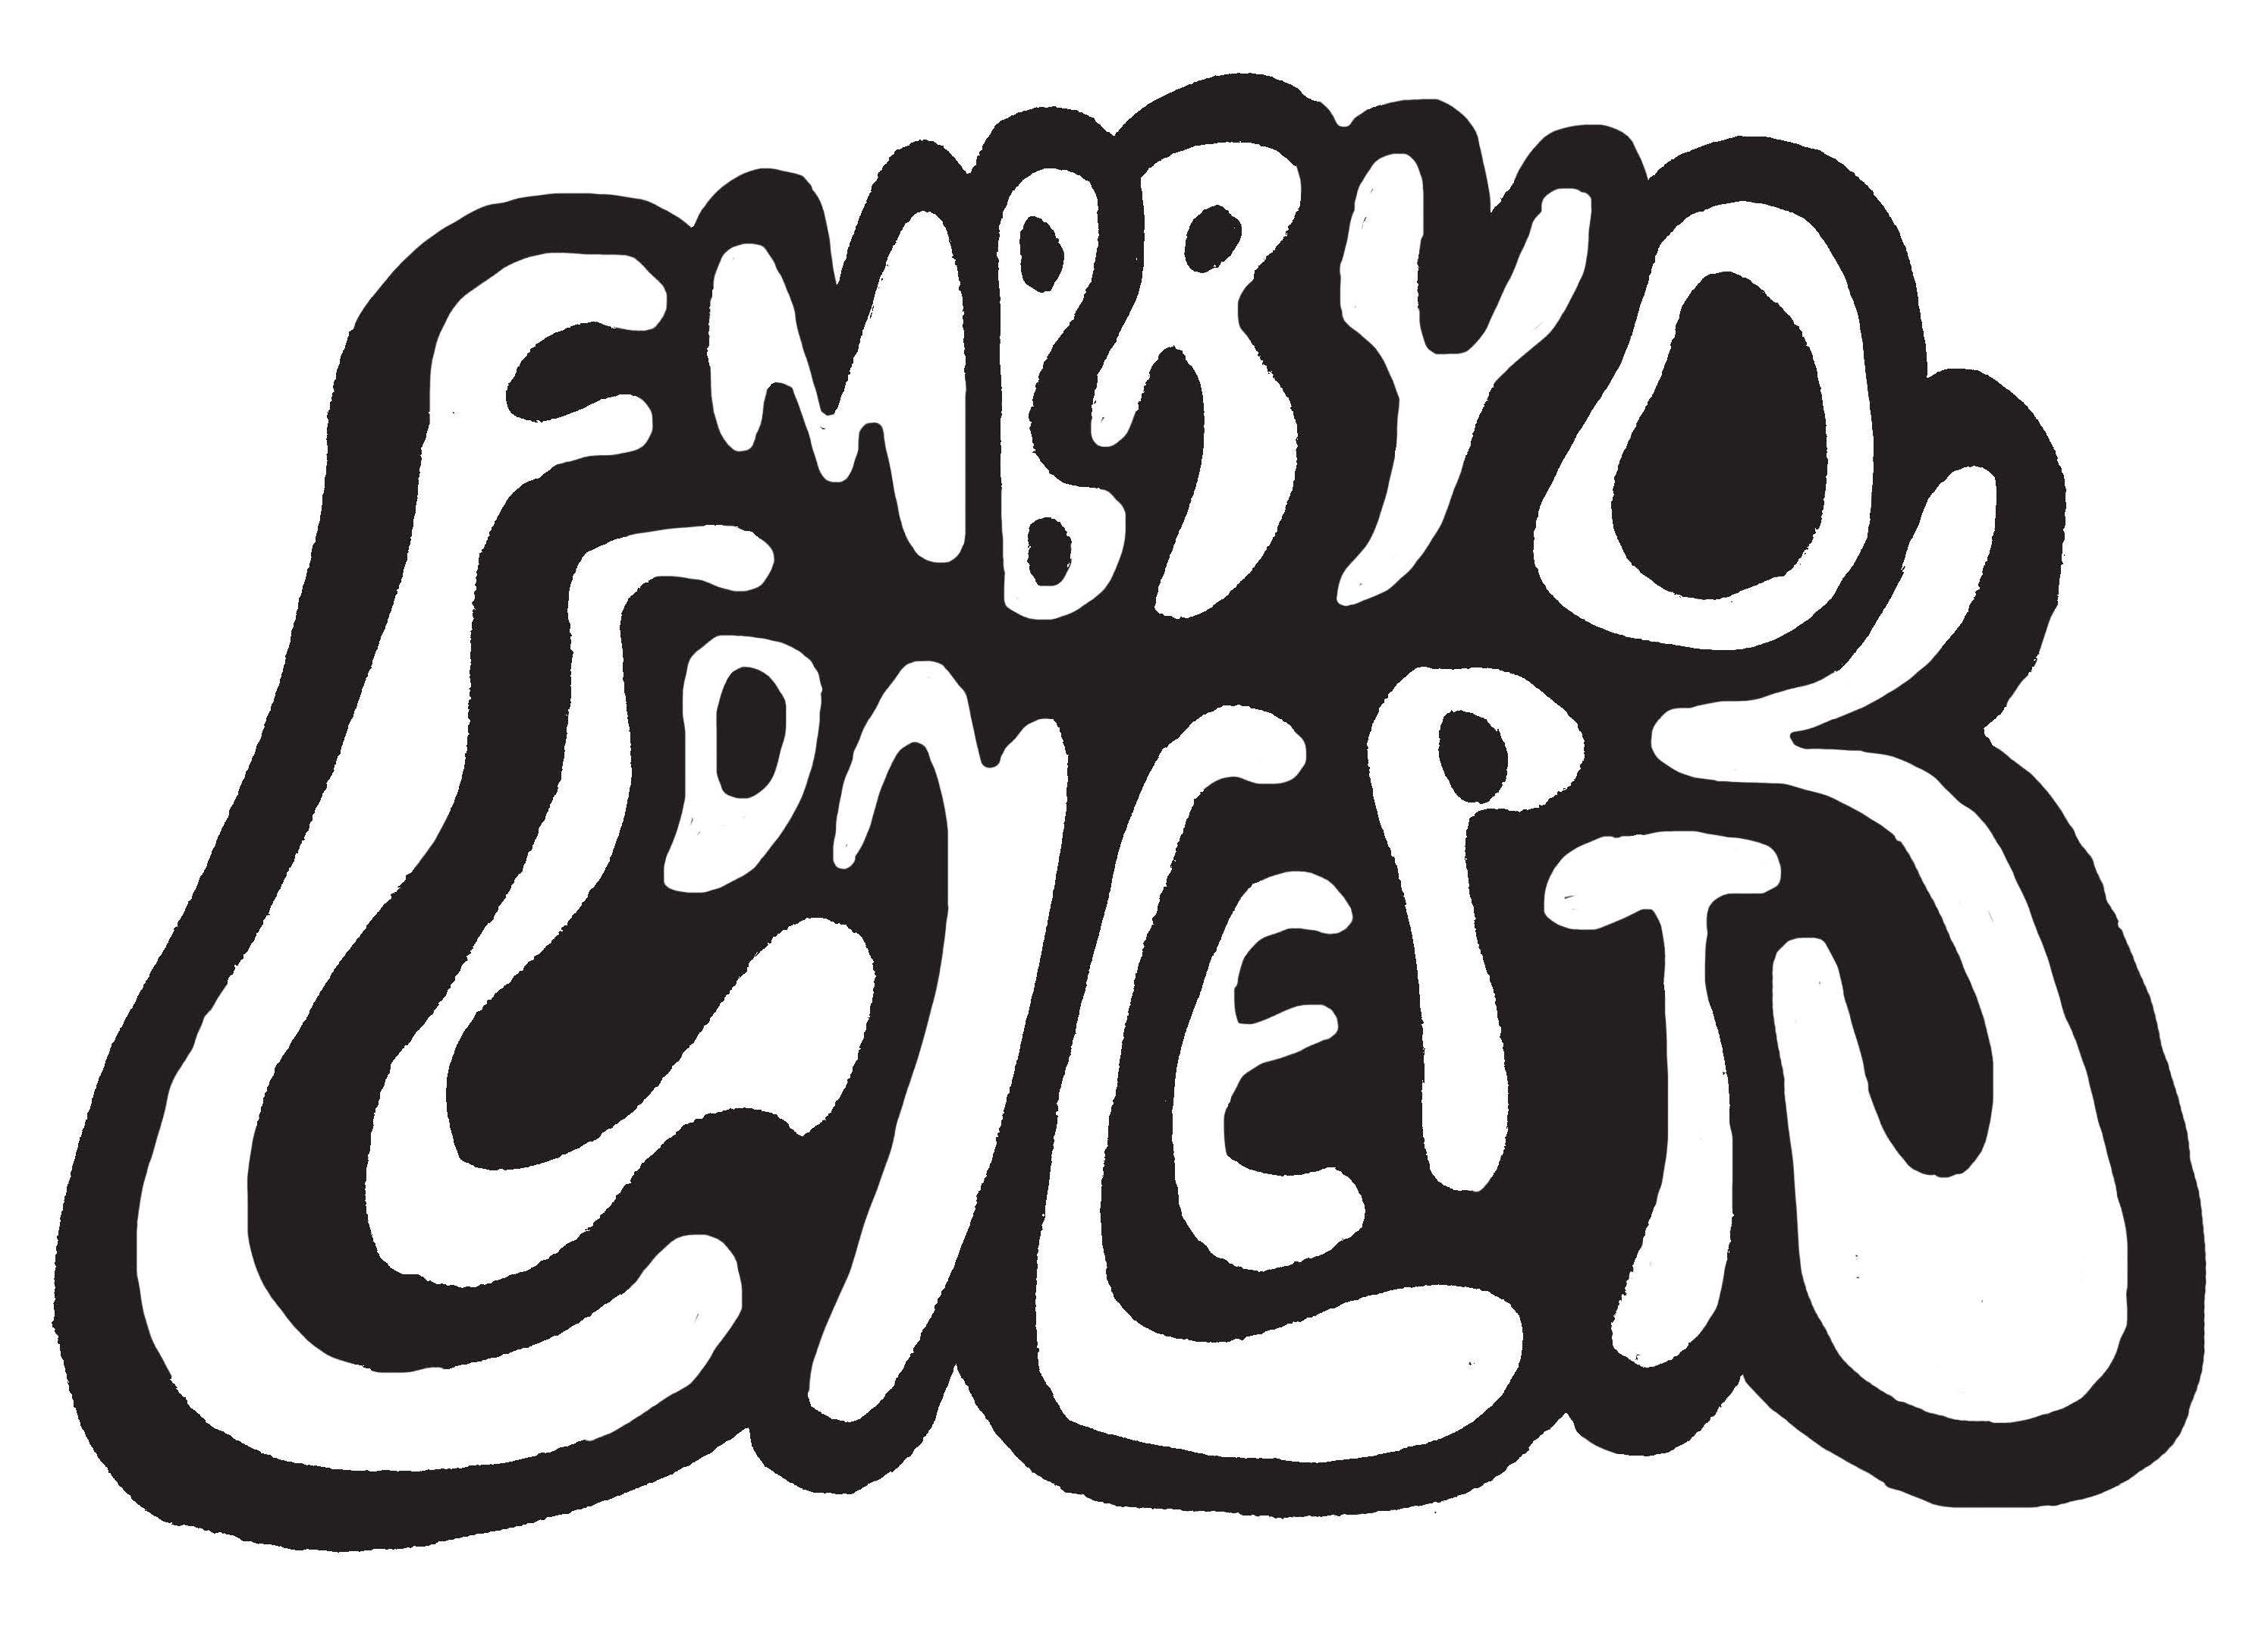 Embryo Concepts Zine and Collective